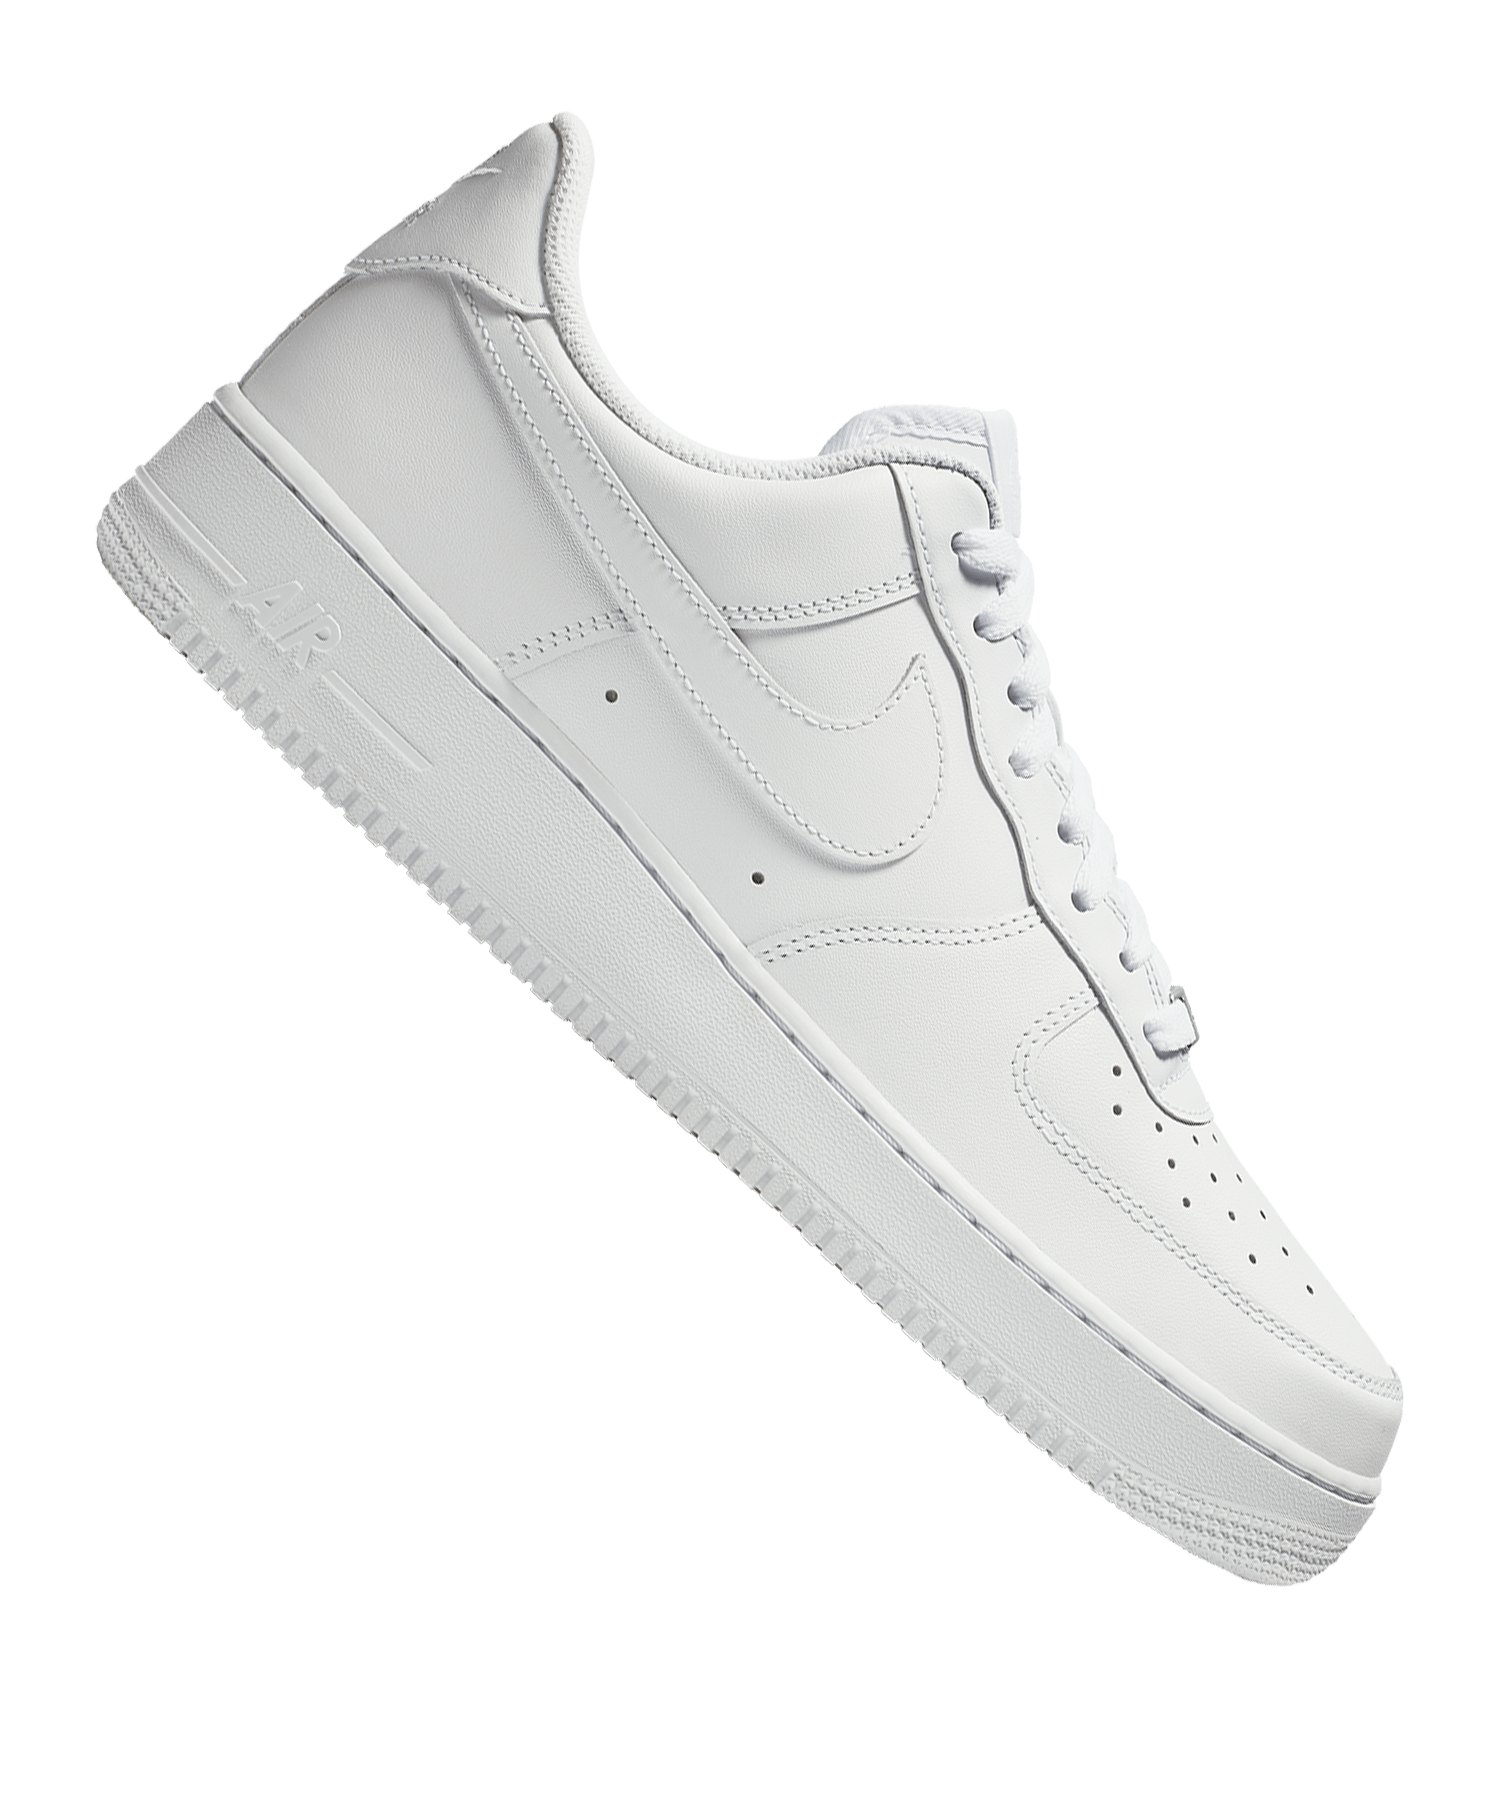 premium selection e839f ec4be Nike Air Force 1 07 Sneaker Weiss F111 - weiss